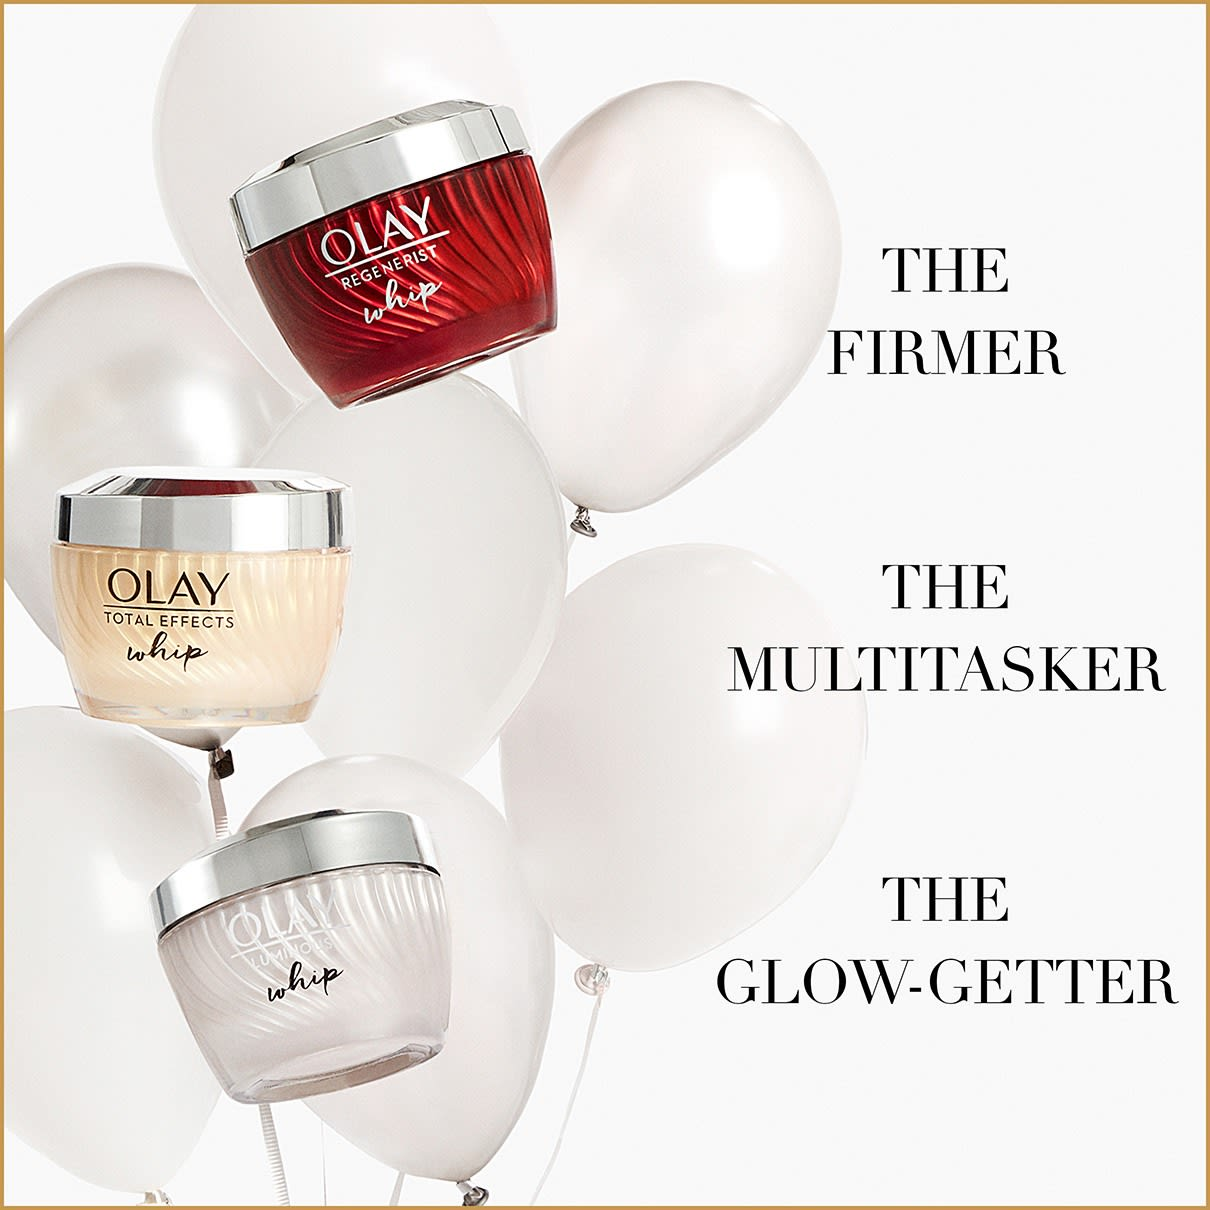 The Glow-Getter